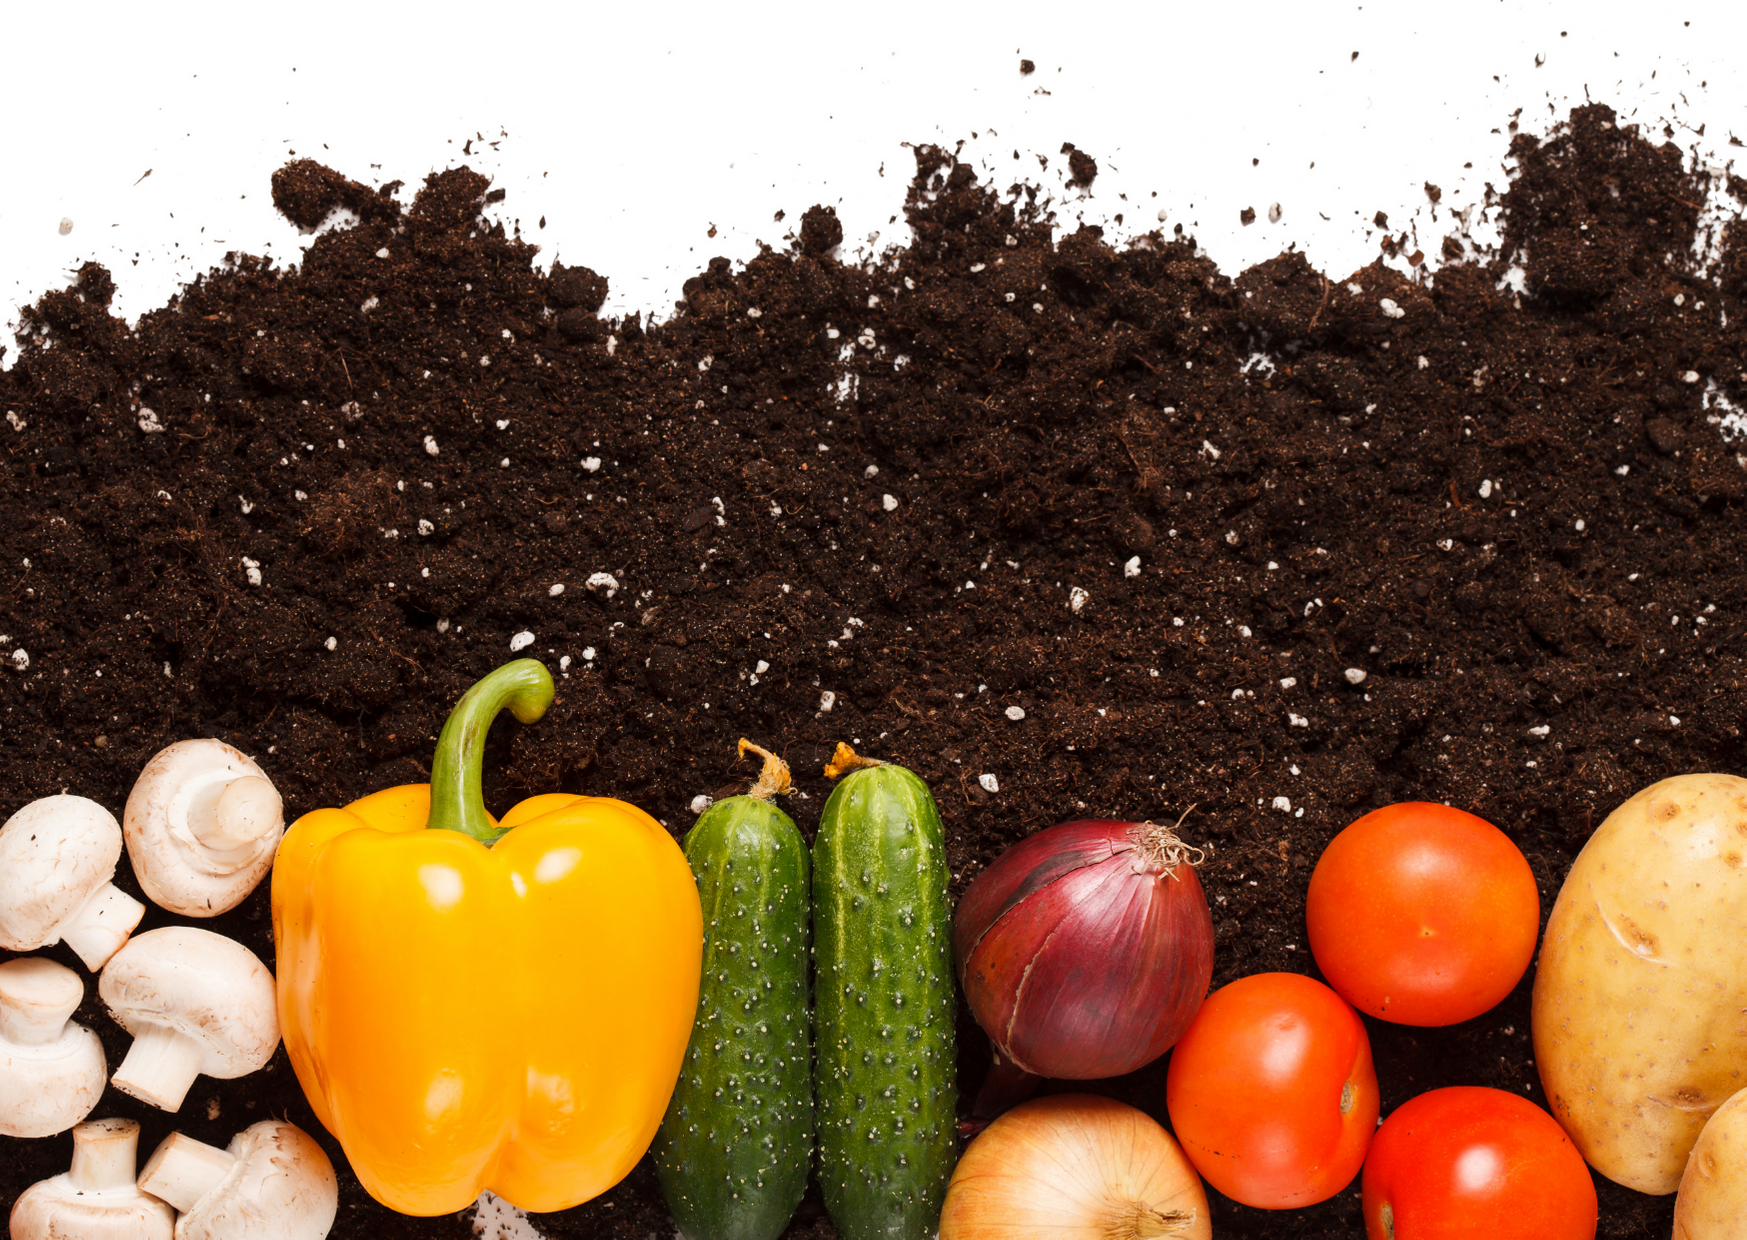 photo of different vegetables with soil